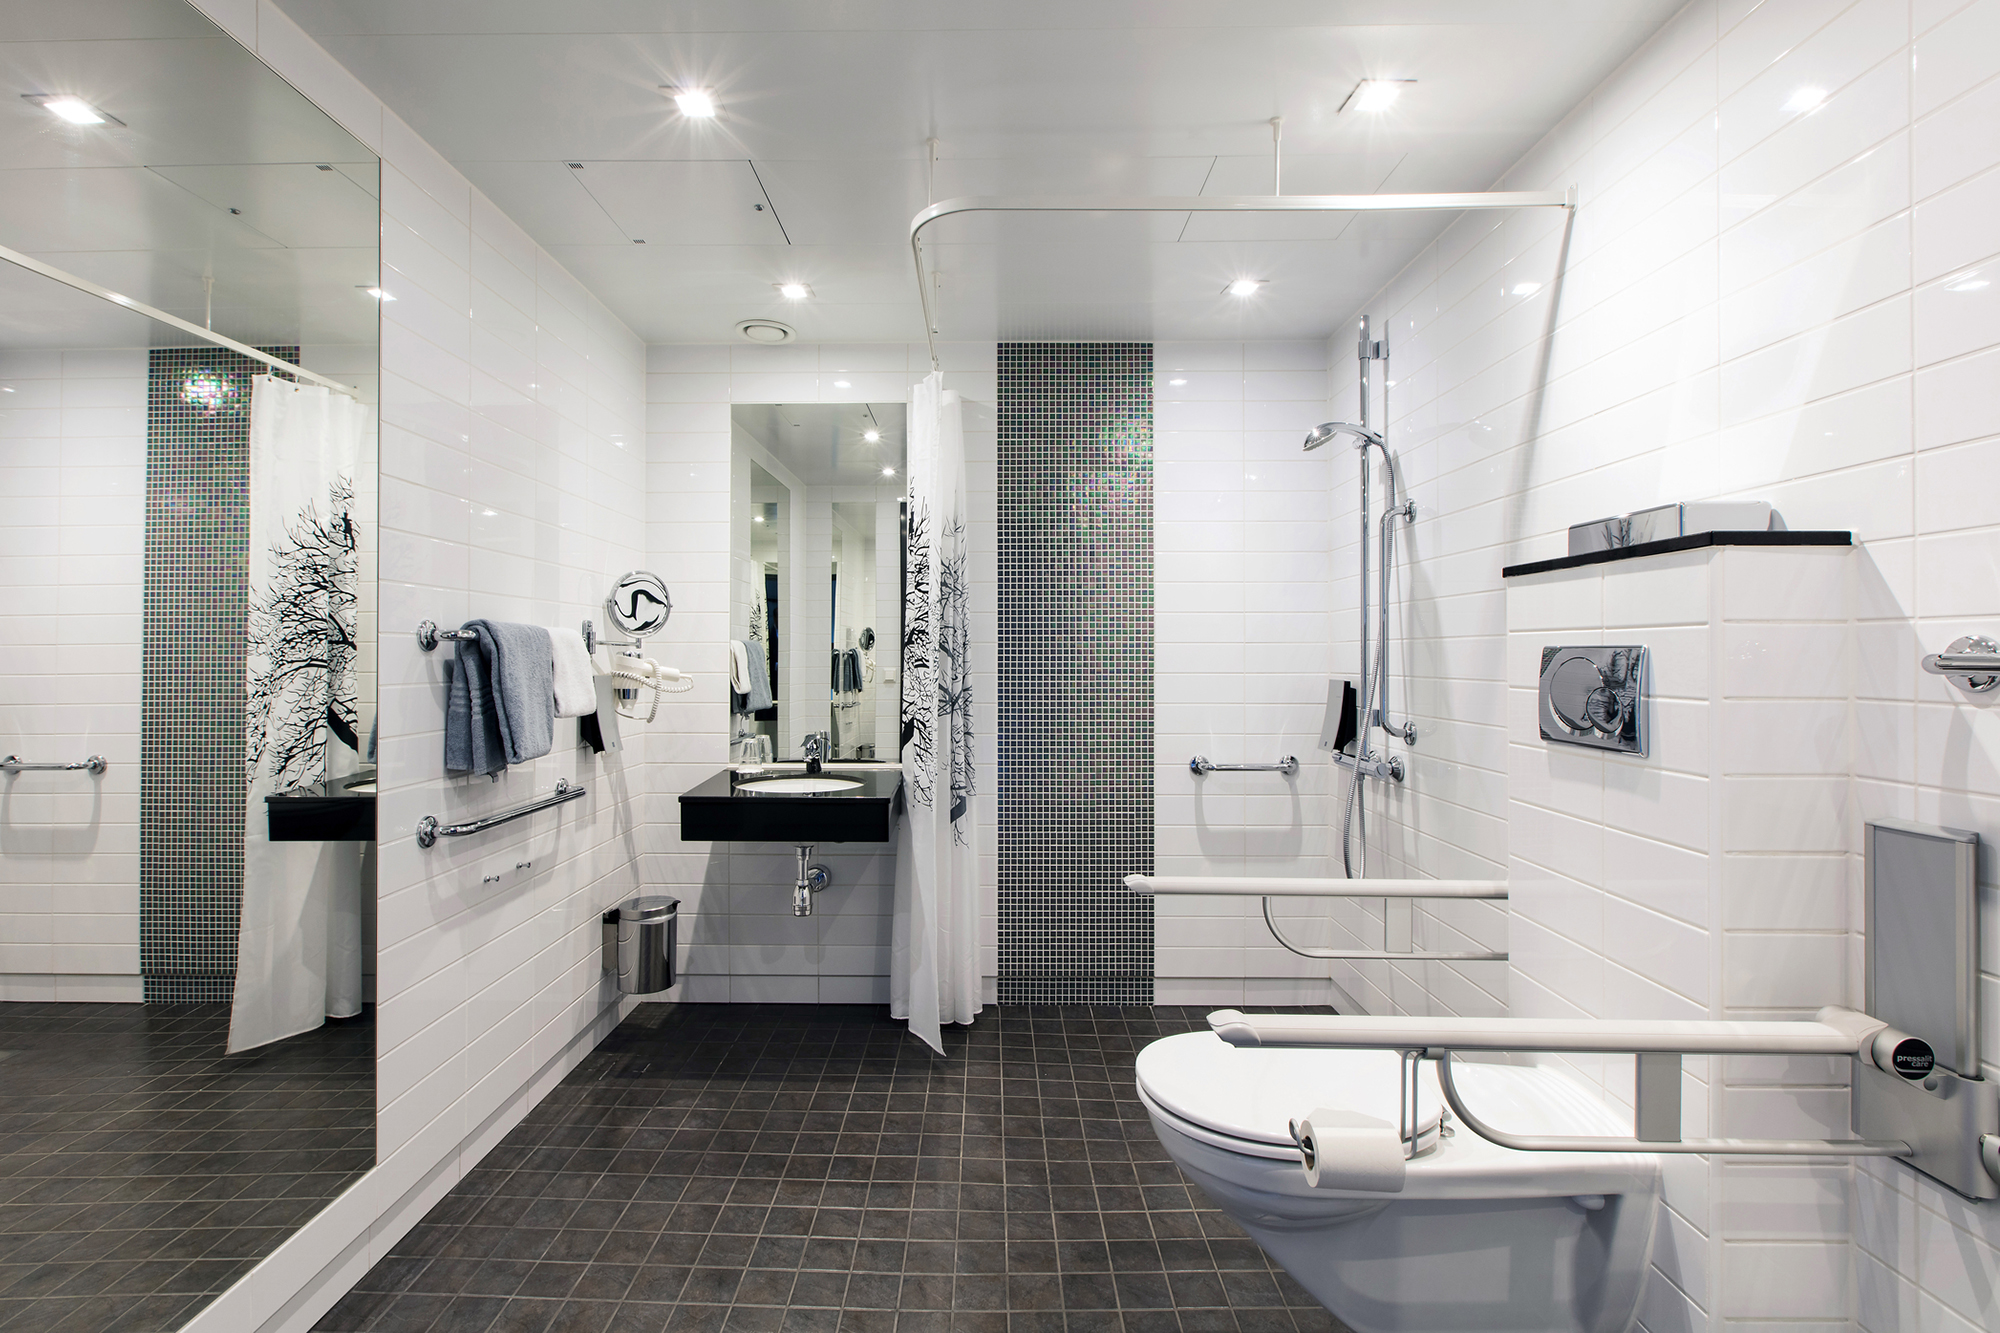 Mobility Adaptions for disabled bathroom